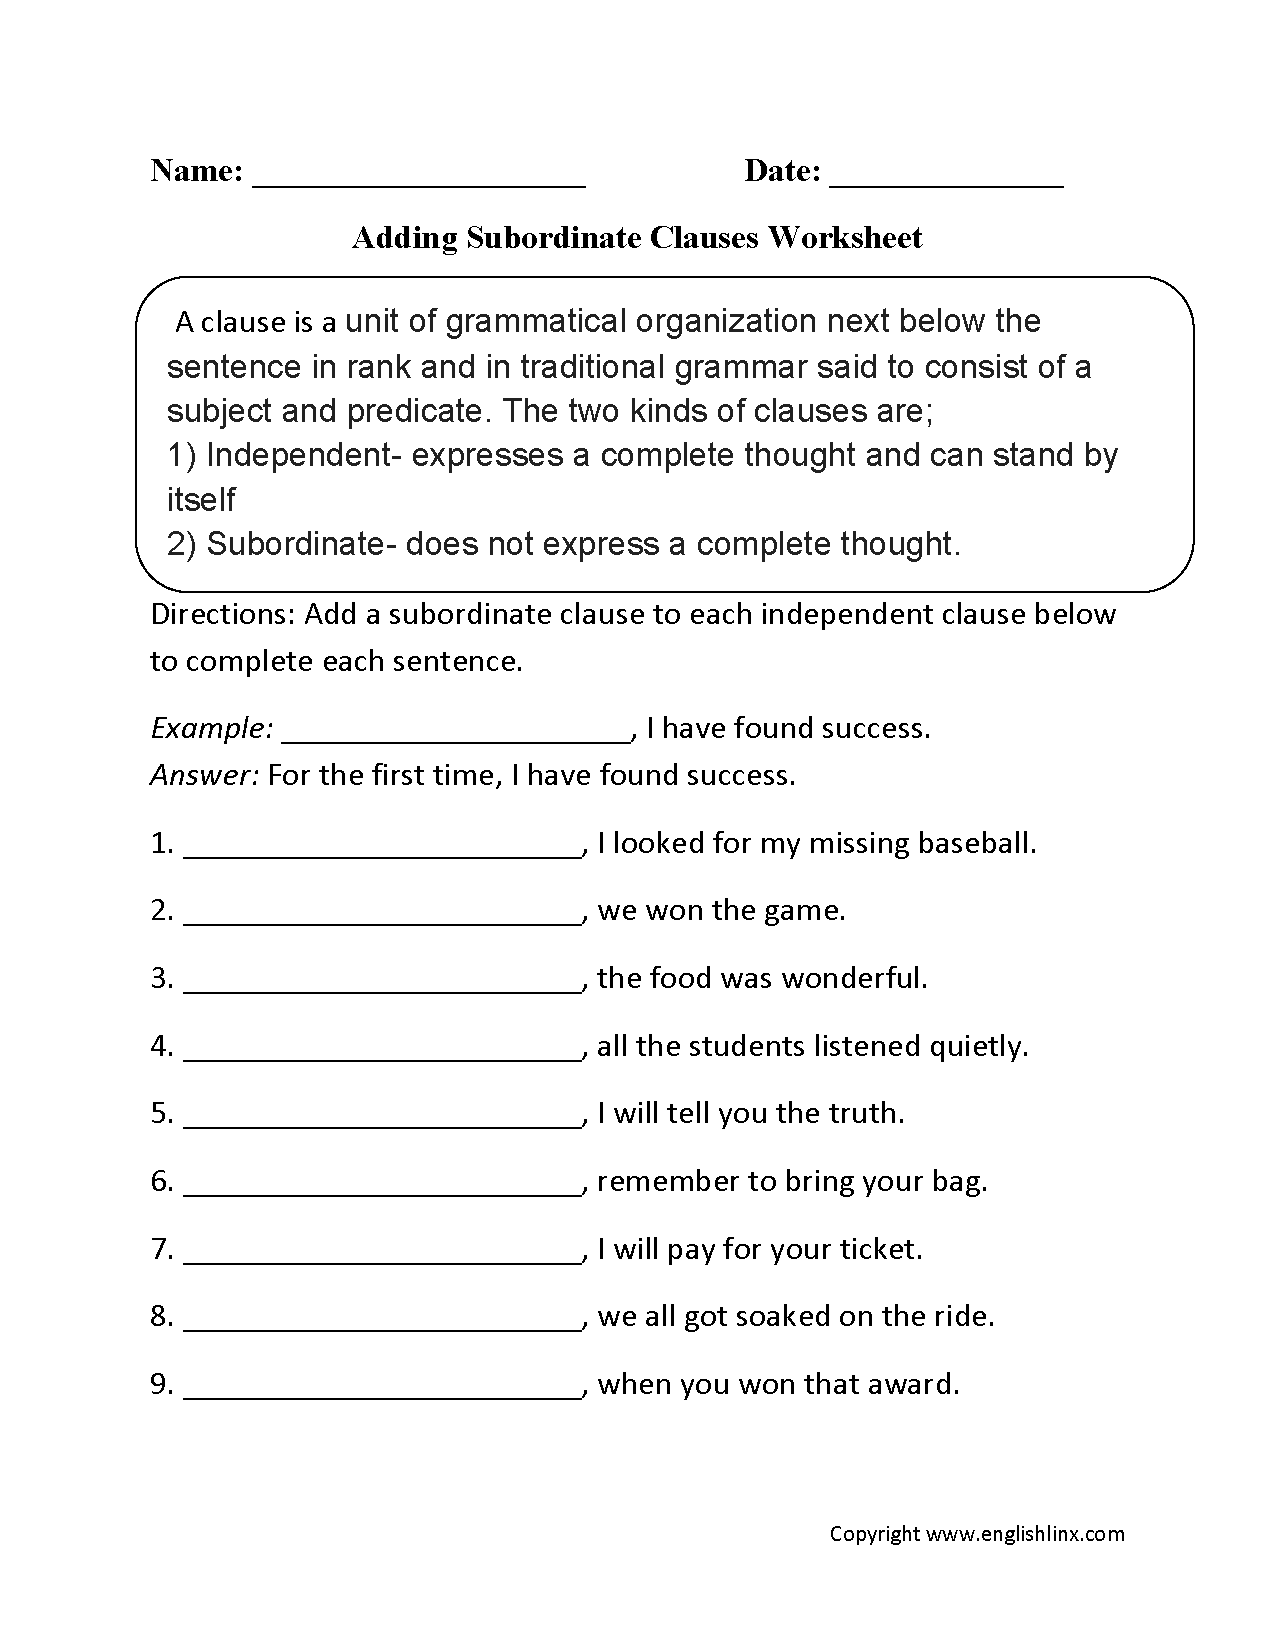 Worksheets Independent And Subordinate Clauses Worksheet clauses worksheets adding subordinate worksheet worksheet